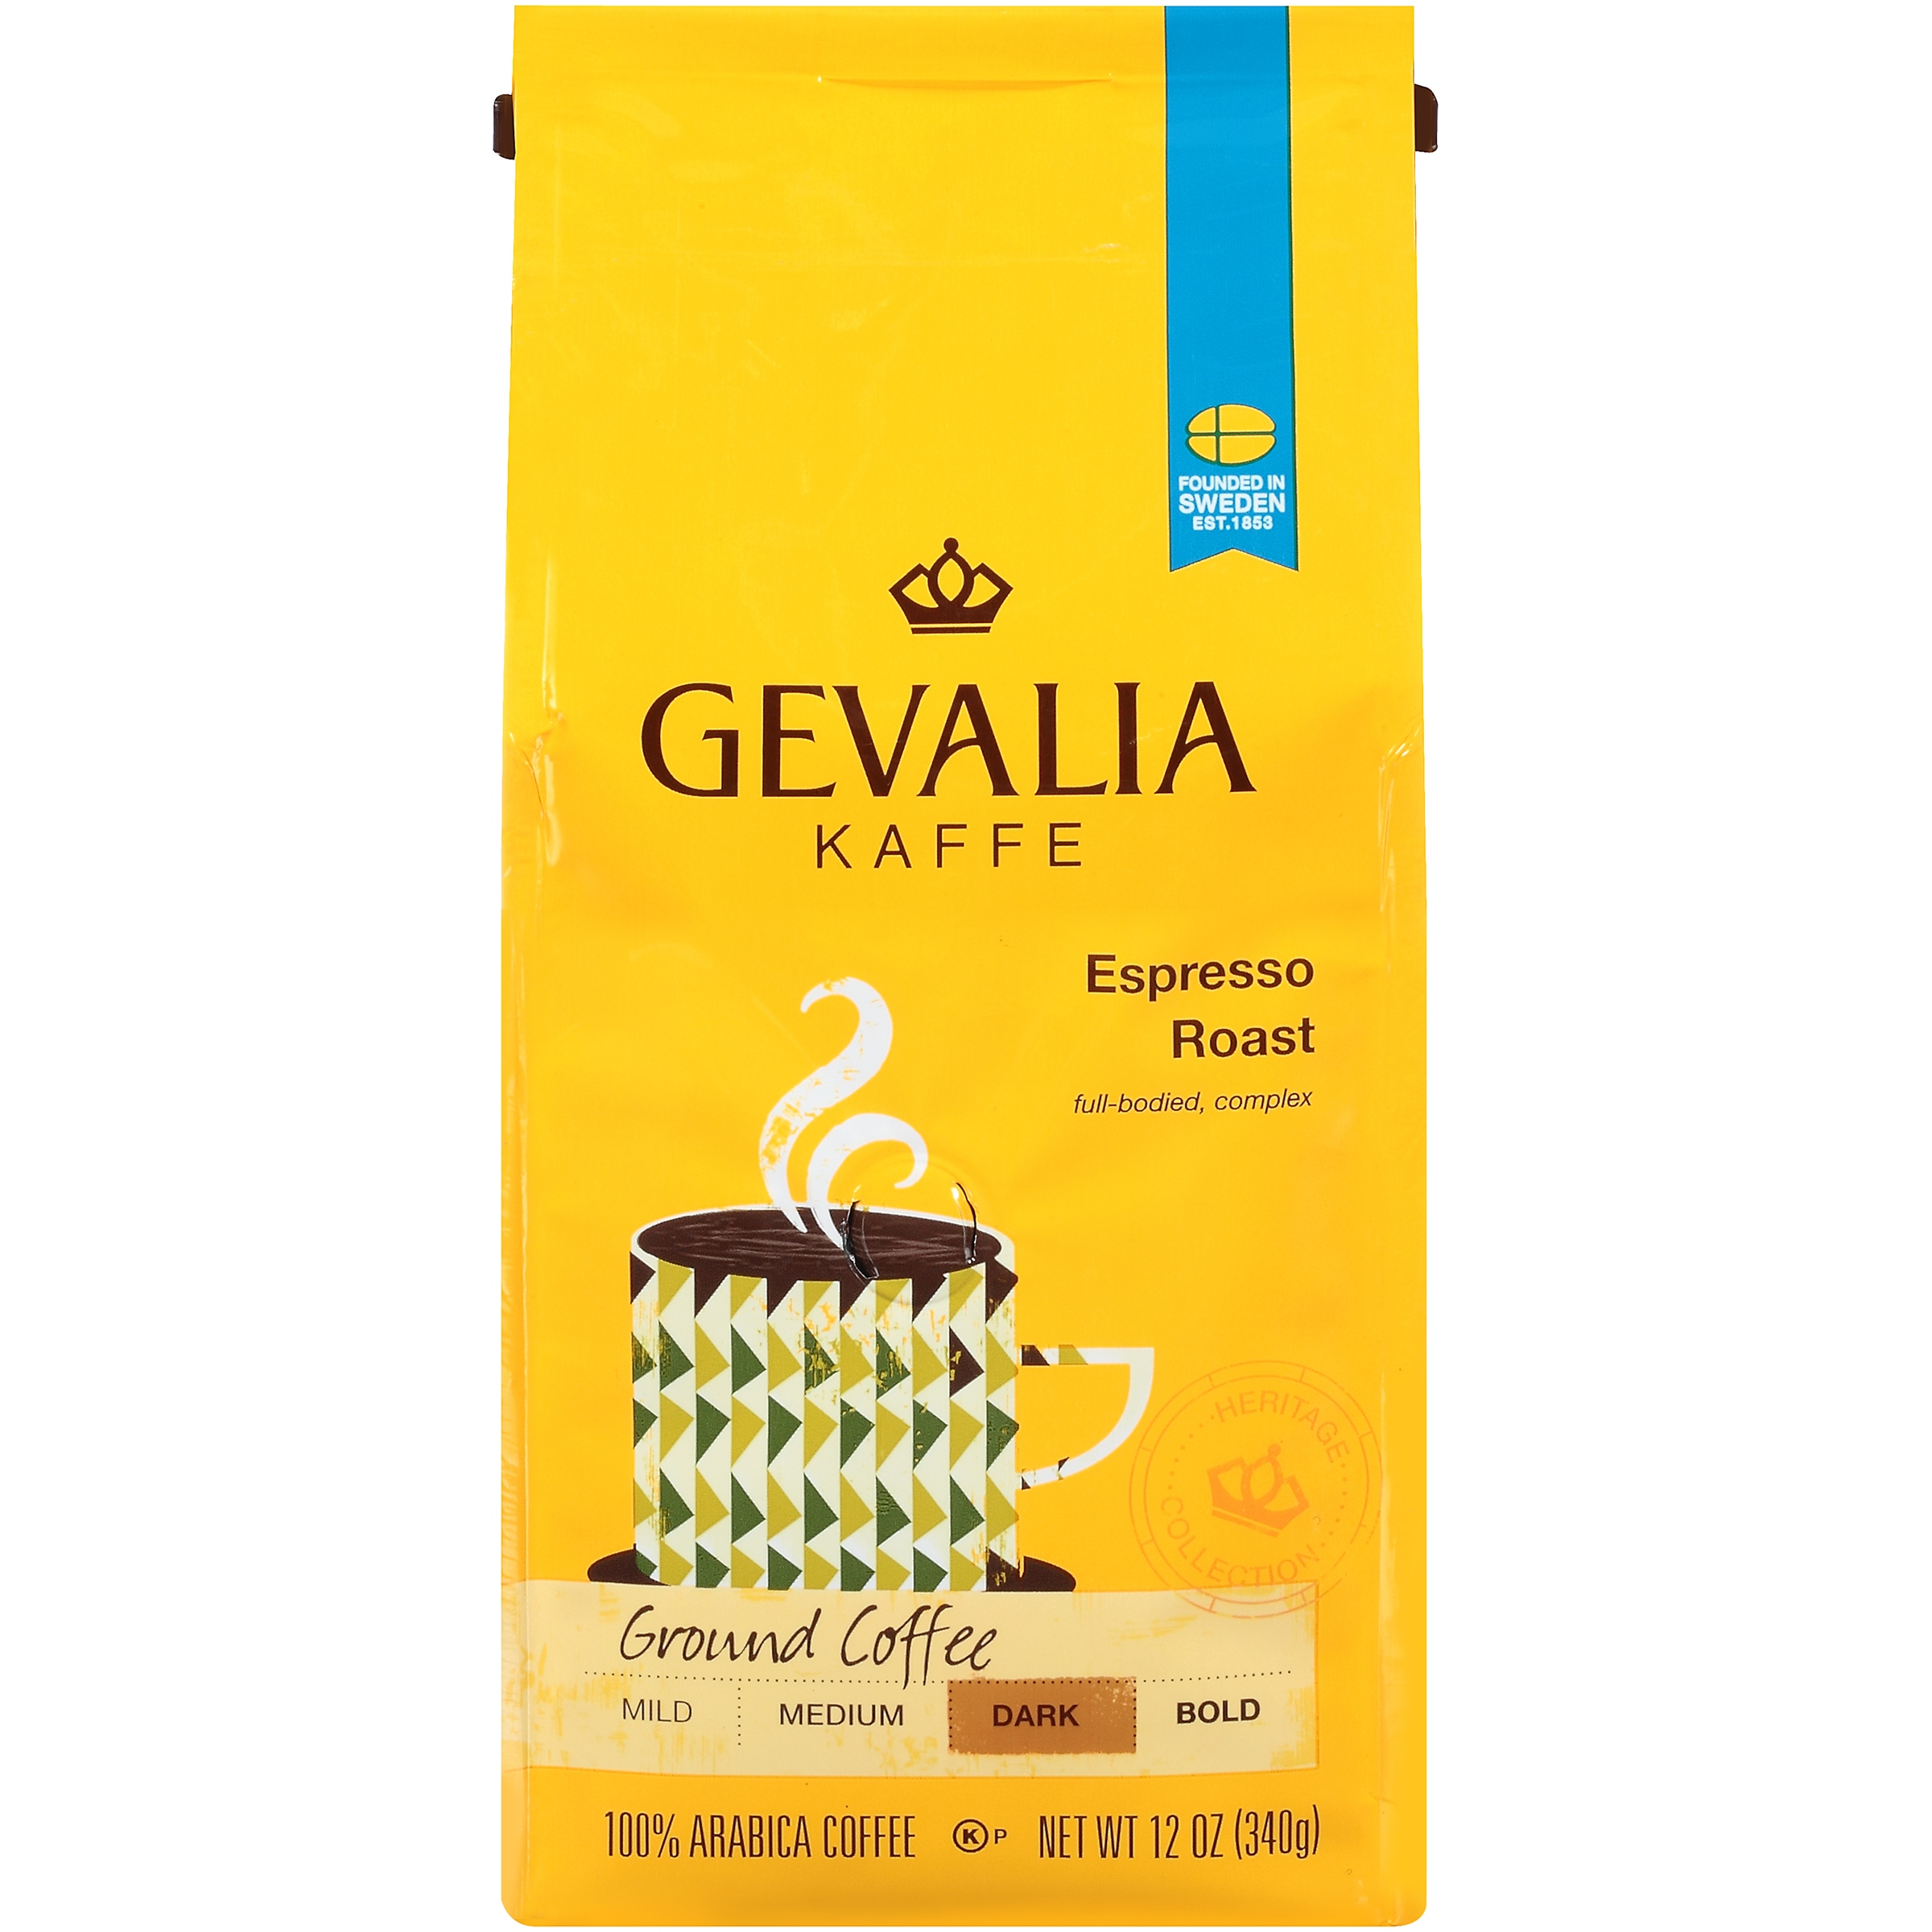 Gevalia Heritage Collection Espresso Roast Ground Coffee 12 oz. Bag